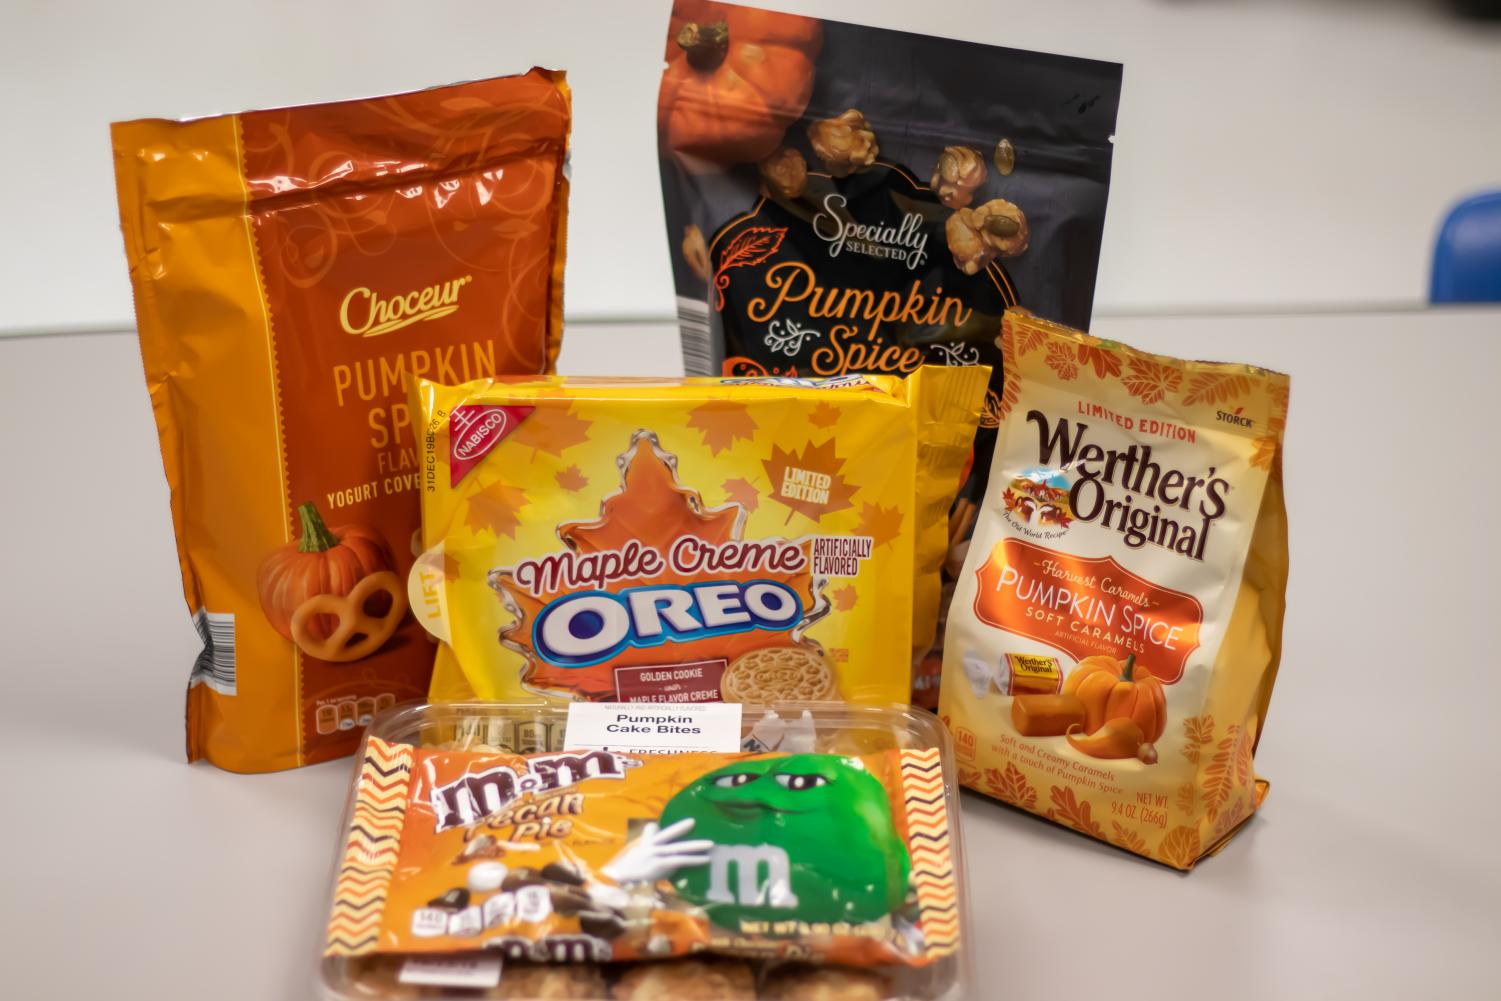 Our Editor-in-Chief, Mandy Huynh, sponsored these purchases. Much to her dismay.